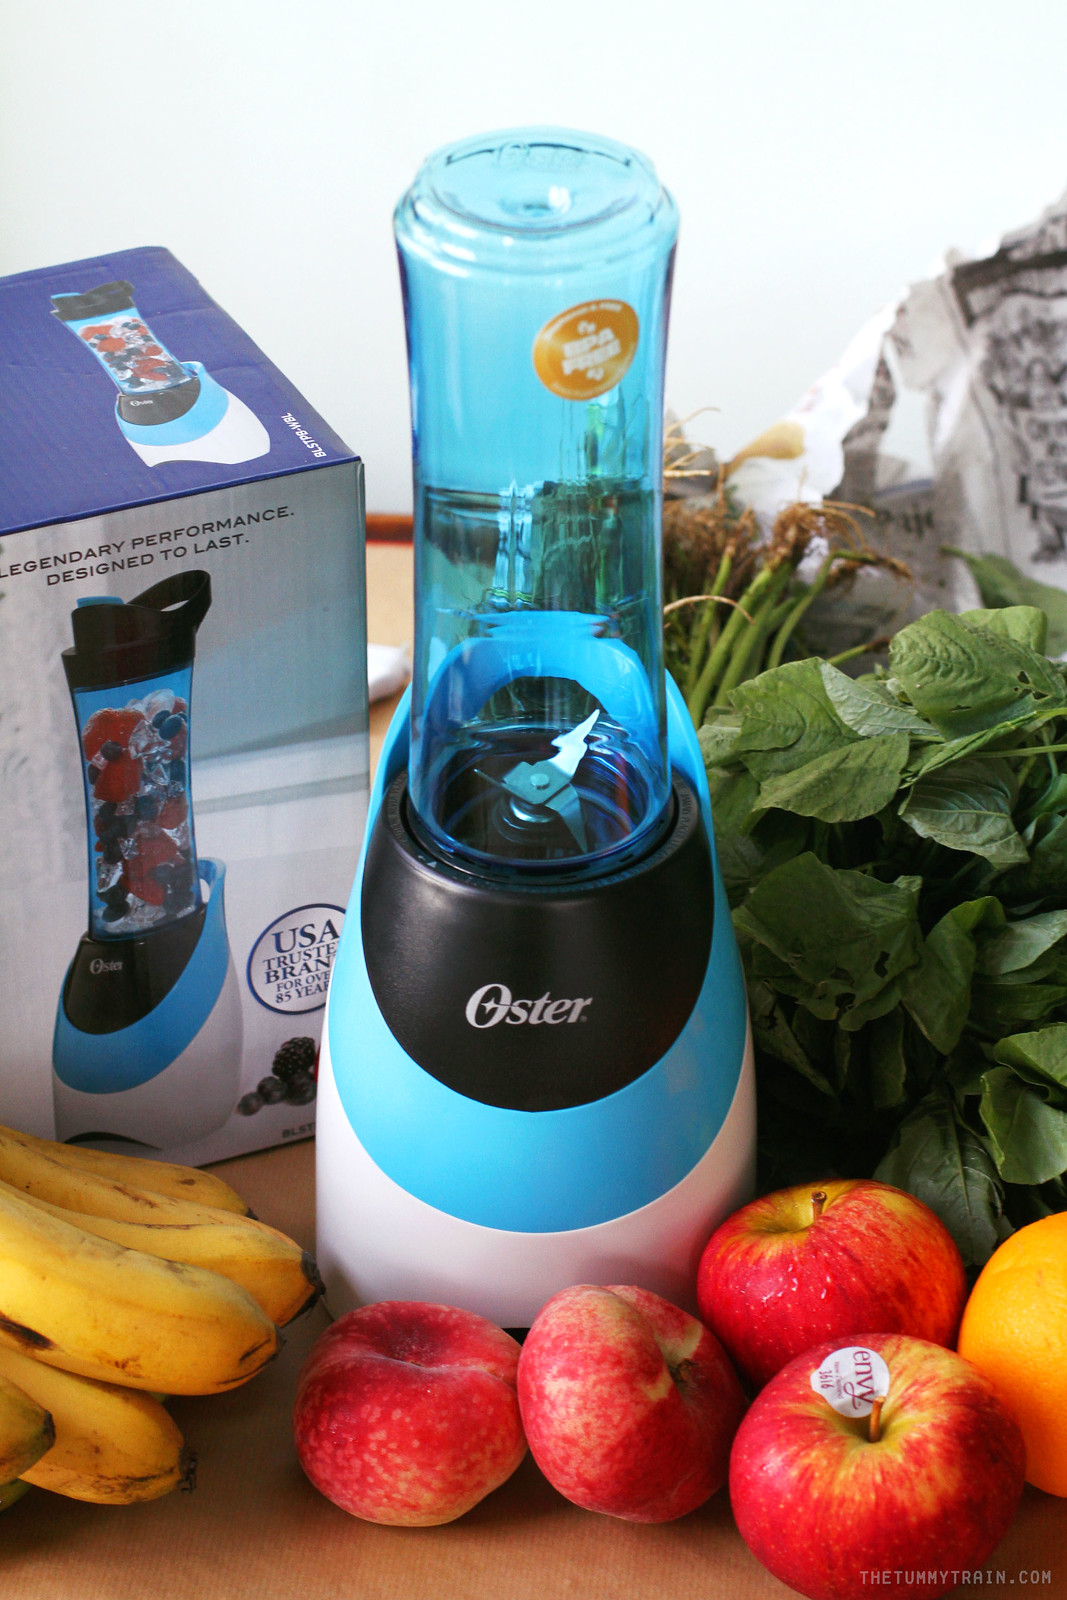 27190285522 3b46bdb3e3 h - A review on the Oster MyBlend Personal Blender + Giveaway!